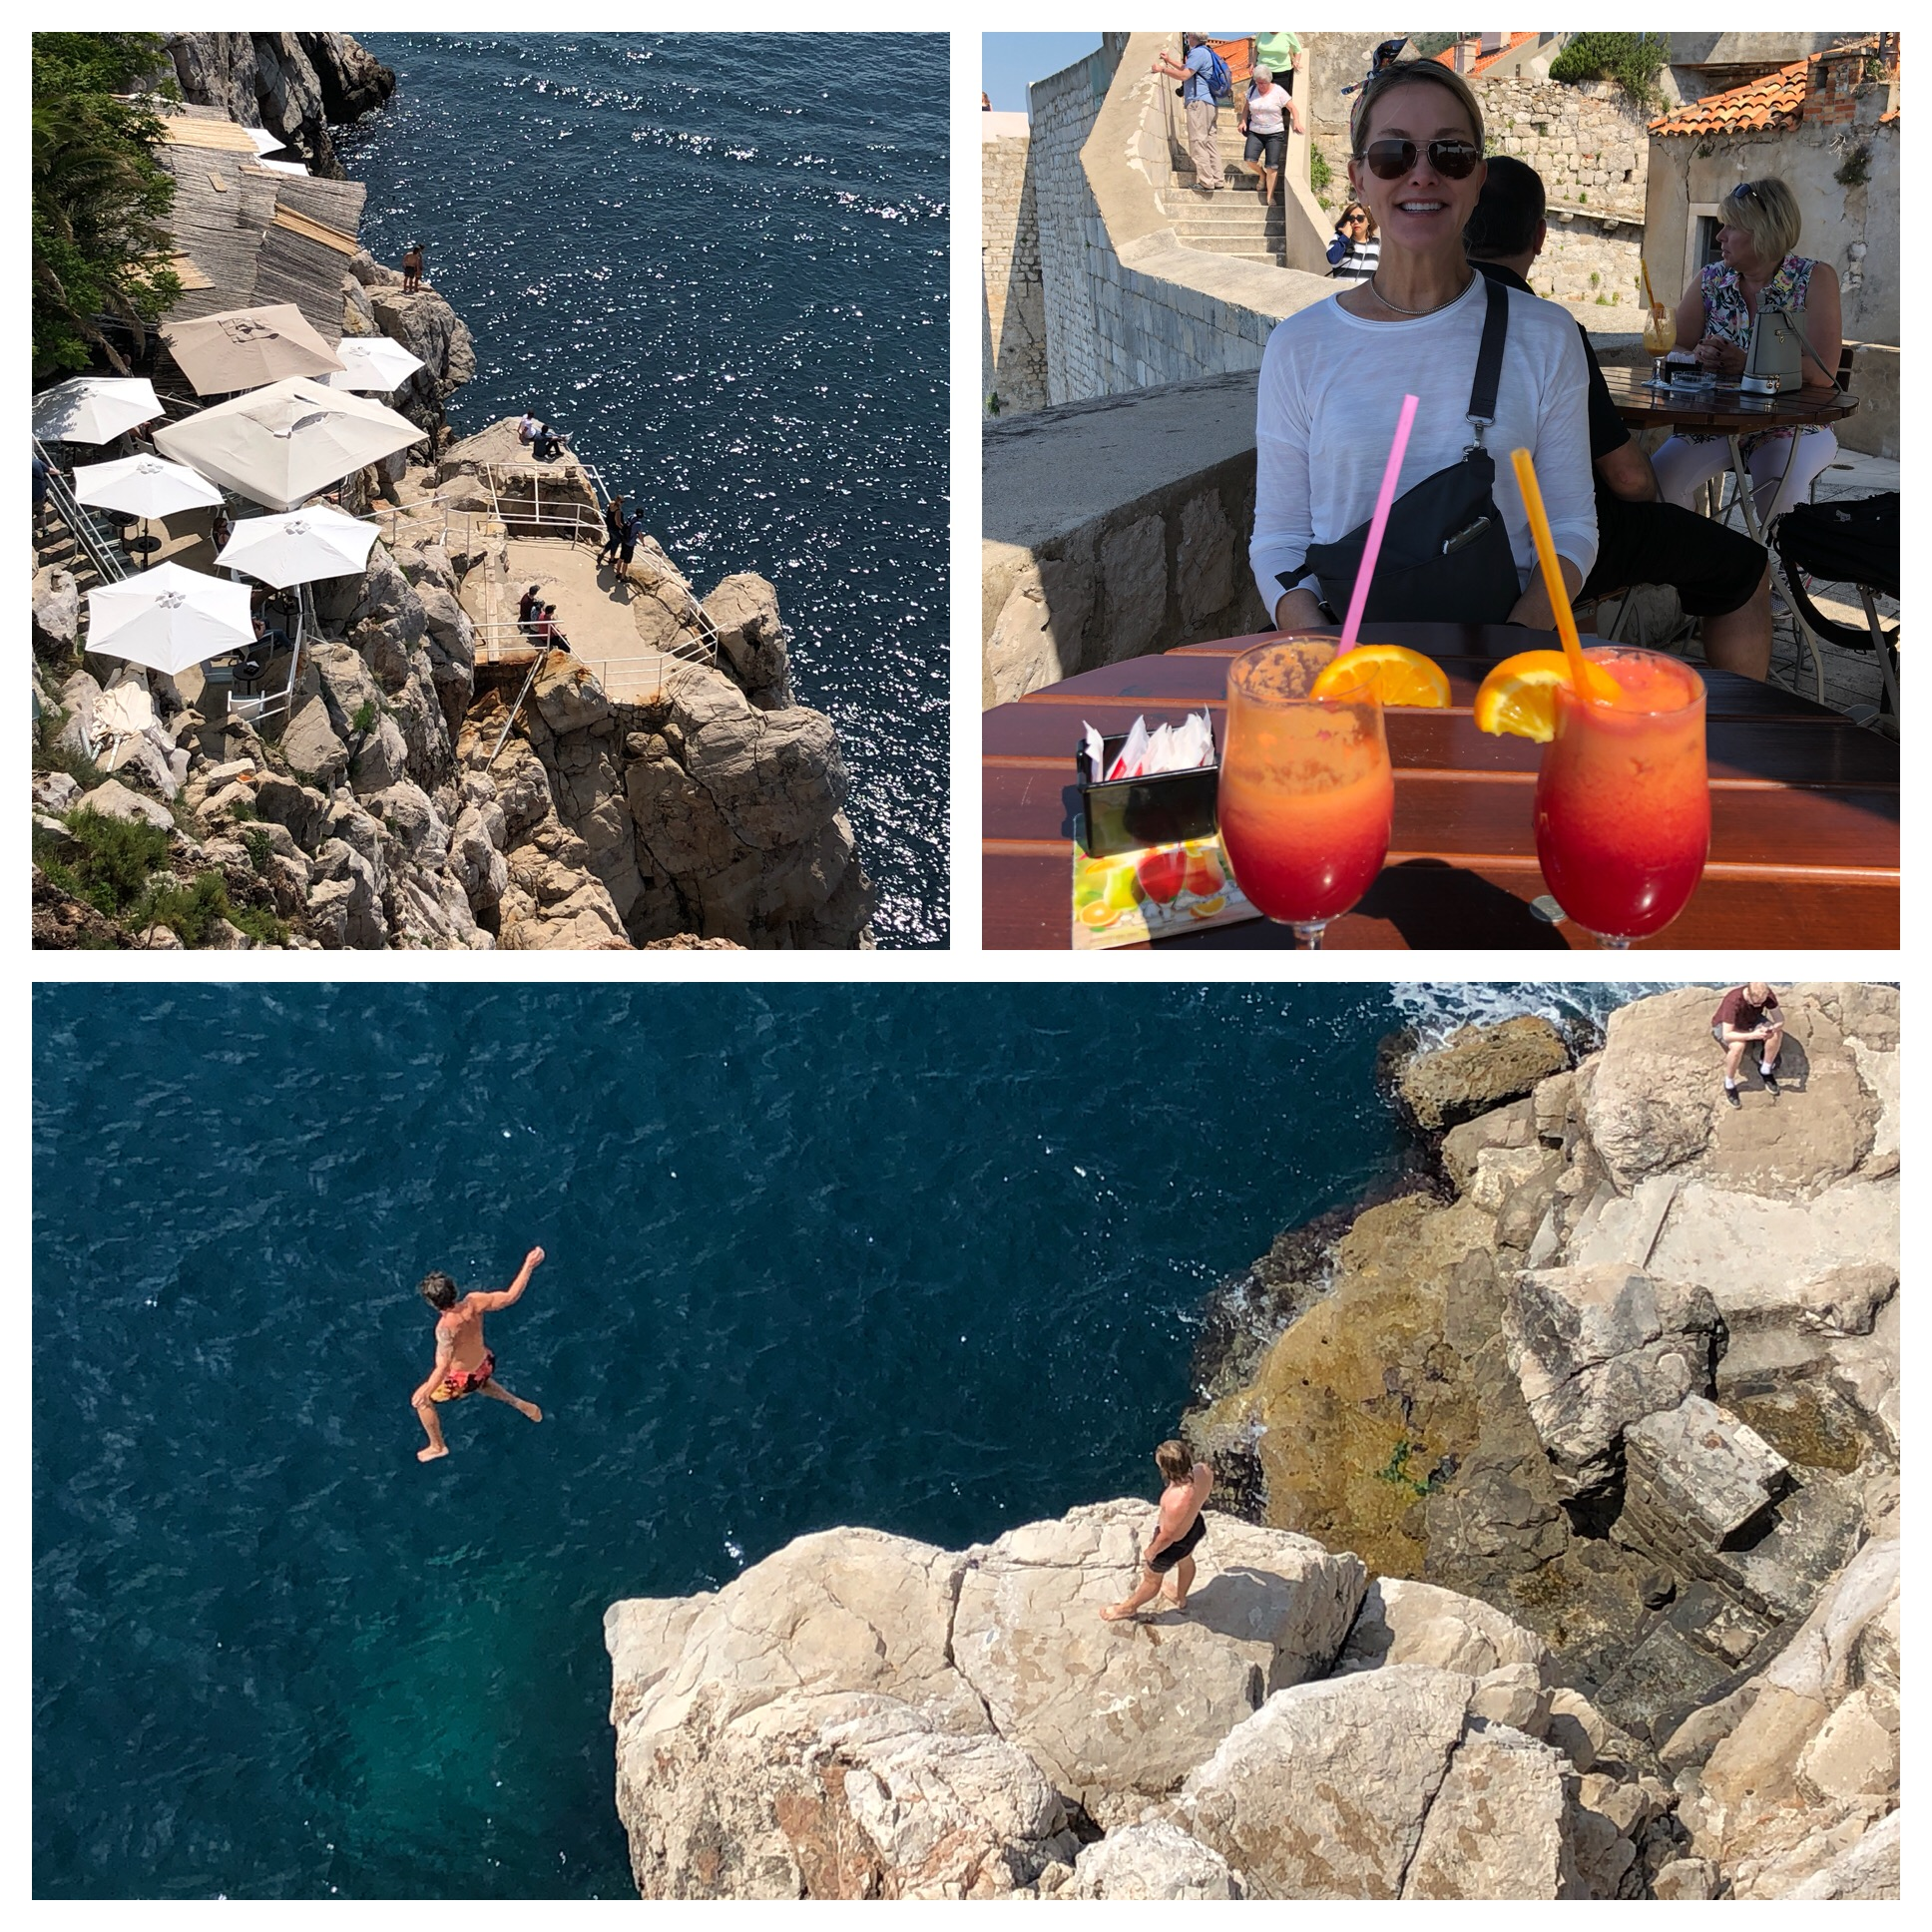 Top left is Buza II and people jump off the rocks right in front of it into the sea - and we saw them!